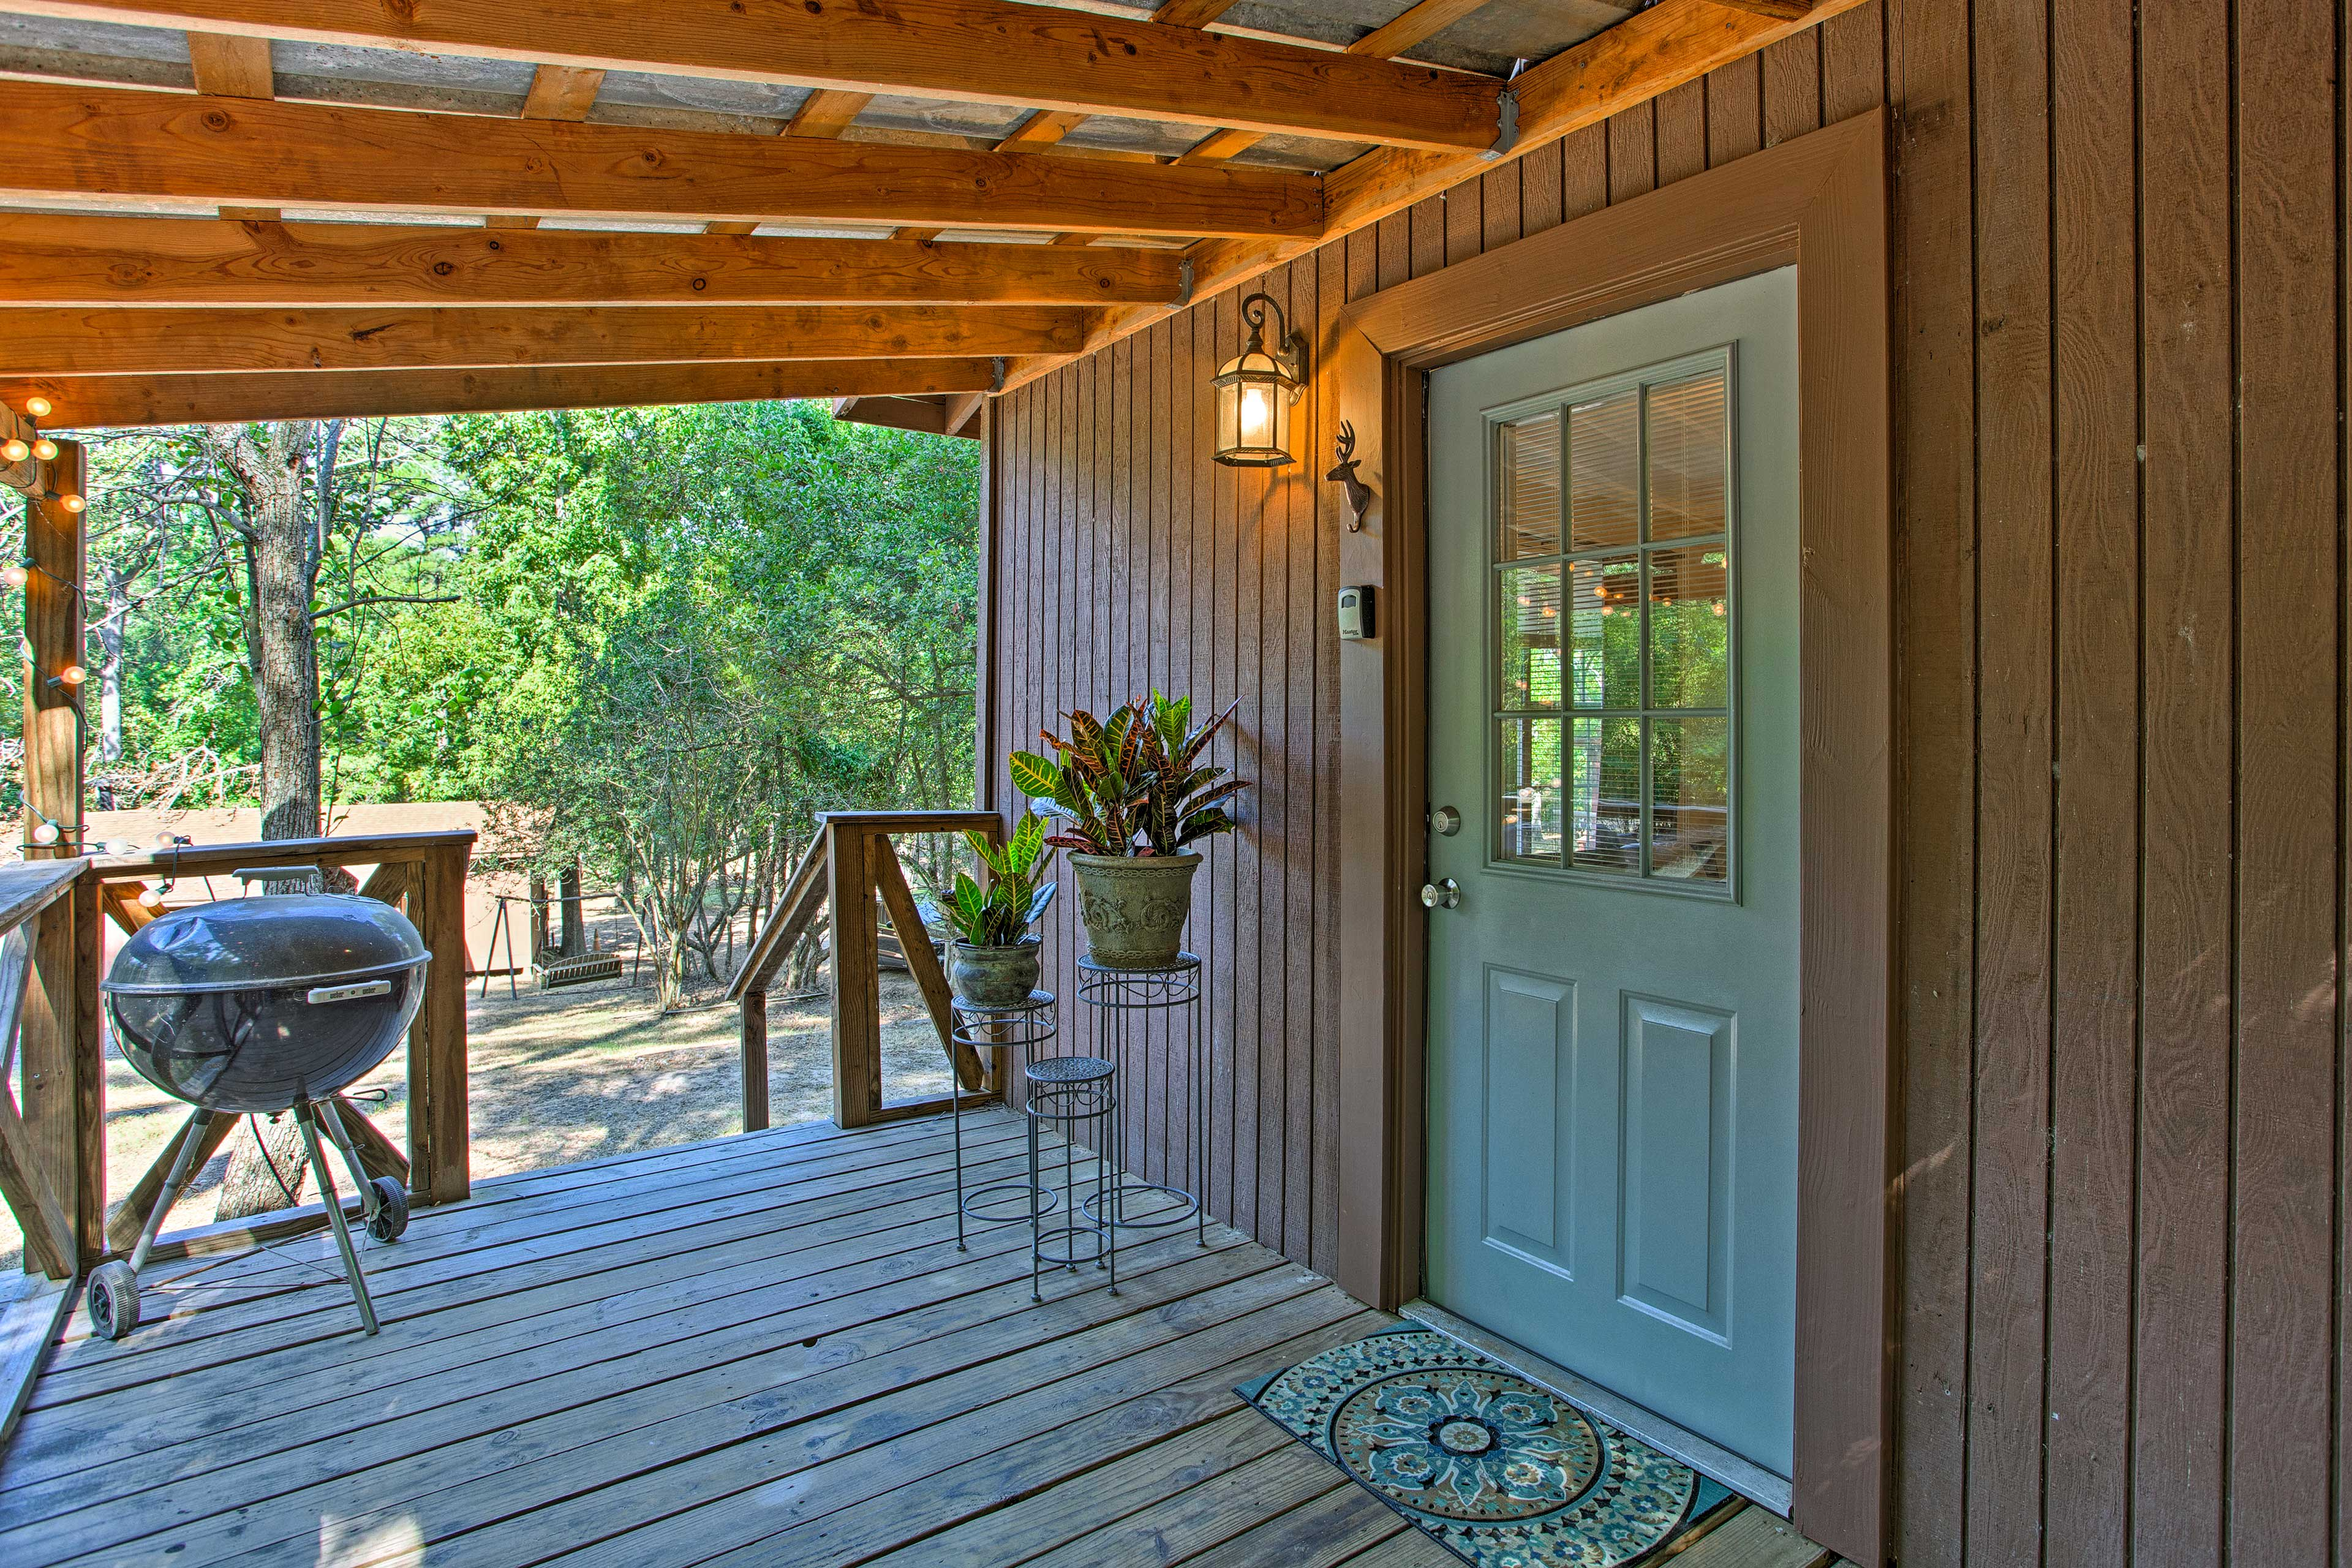 The vacation rental cabin includes a charcoal grill!